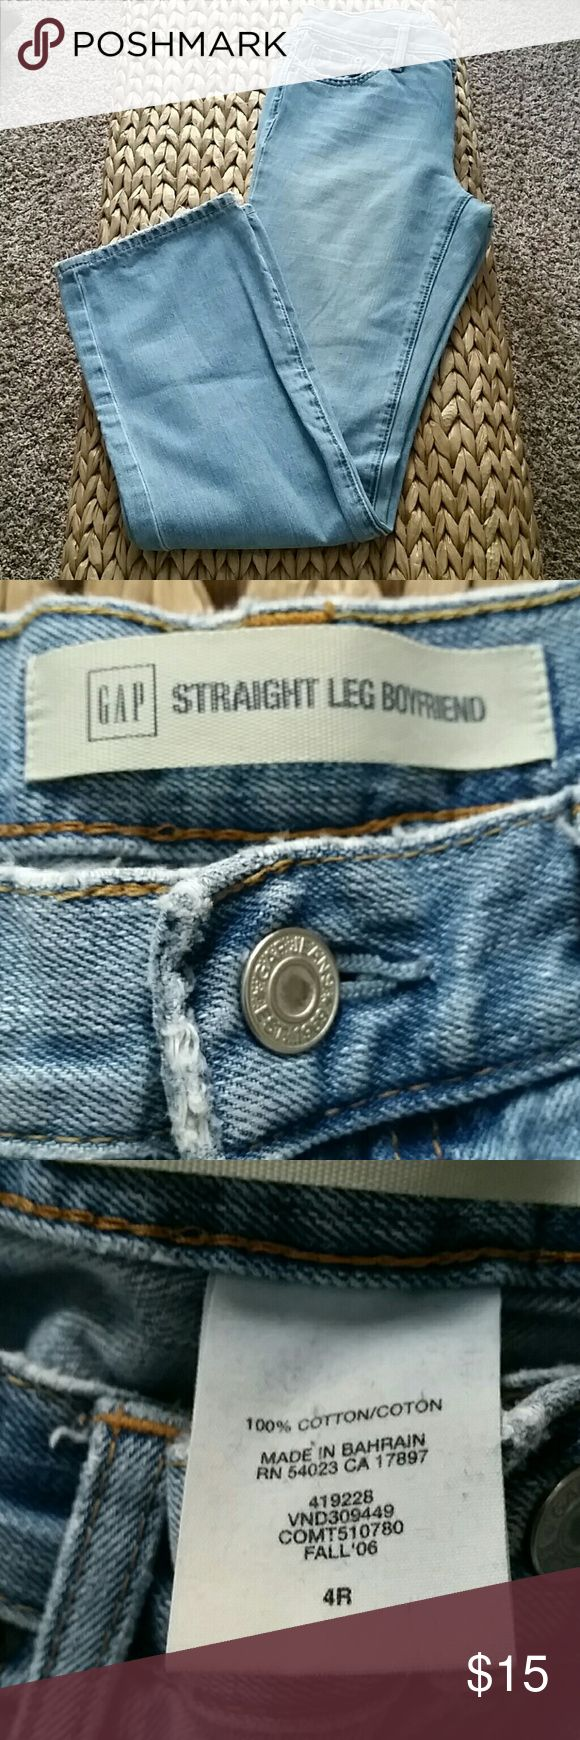 Gap straight leg boyfriend jeans These comfy faded wash jeans are great for all your casual outfits. GAP Jeans Boyfriend